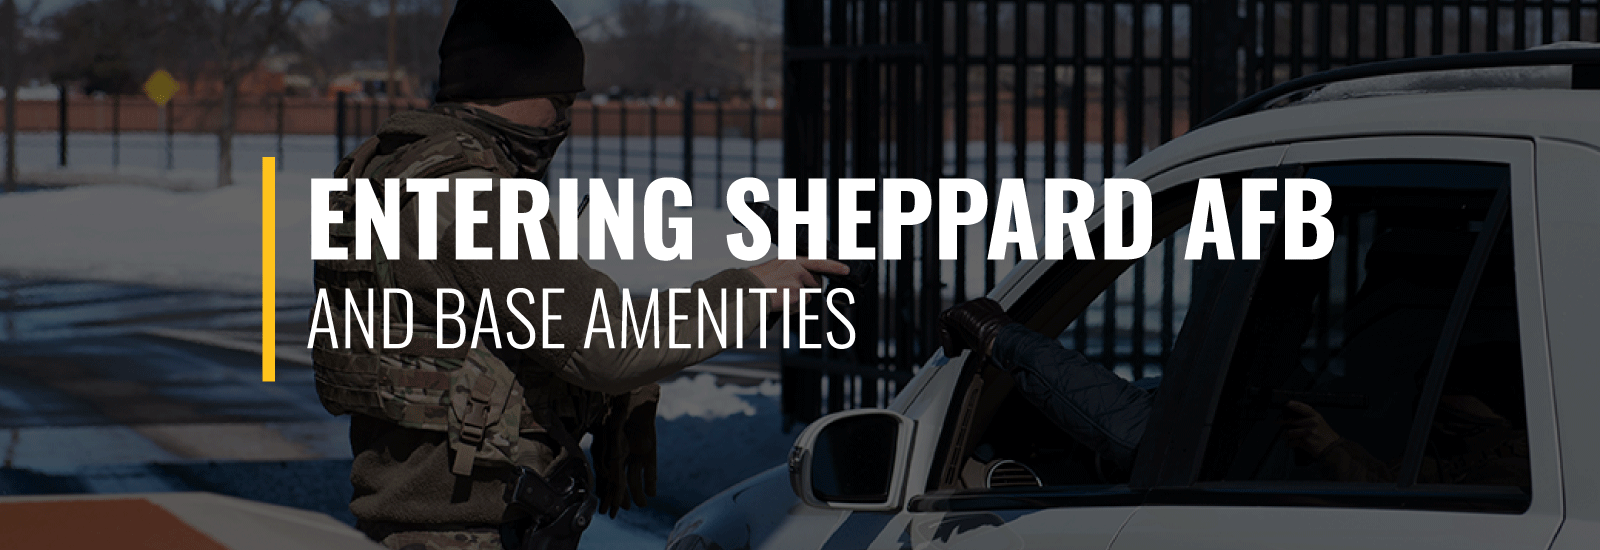 Entering Sheppard Air Force Base and Amenities